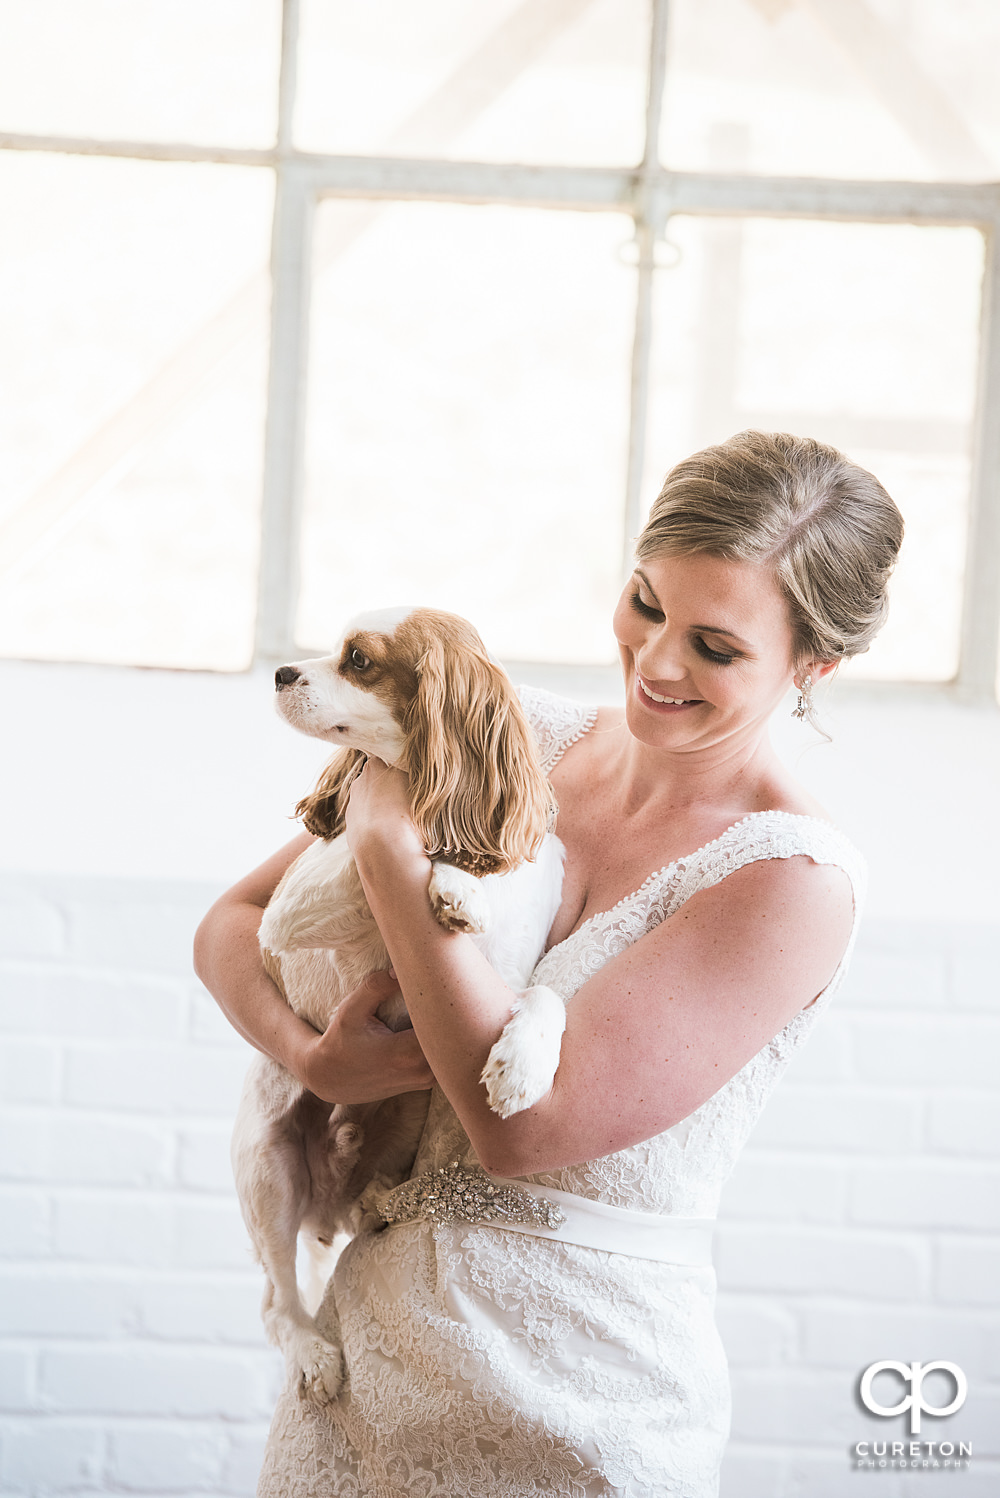 Bride and her dog laughing during her bridal session.